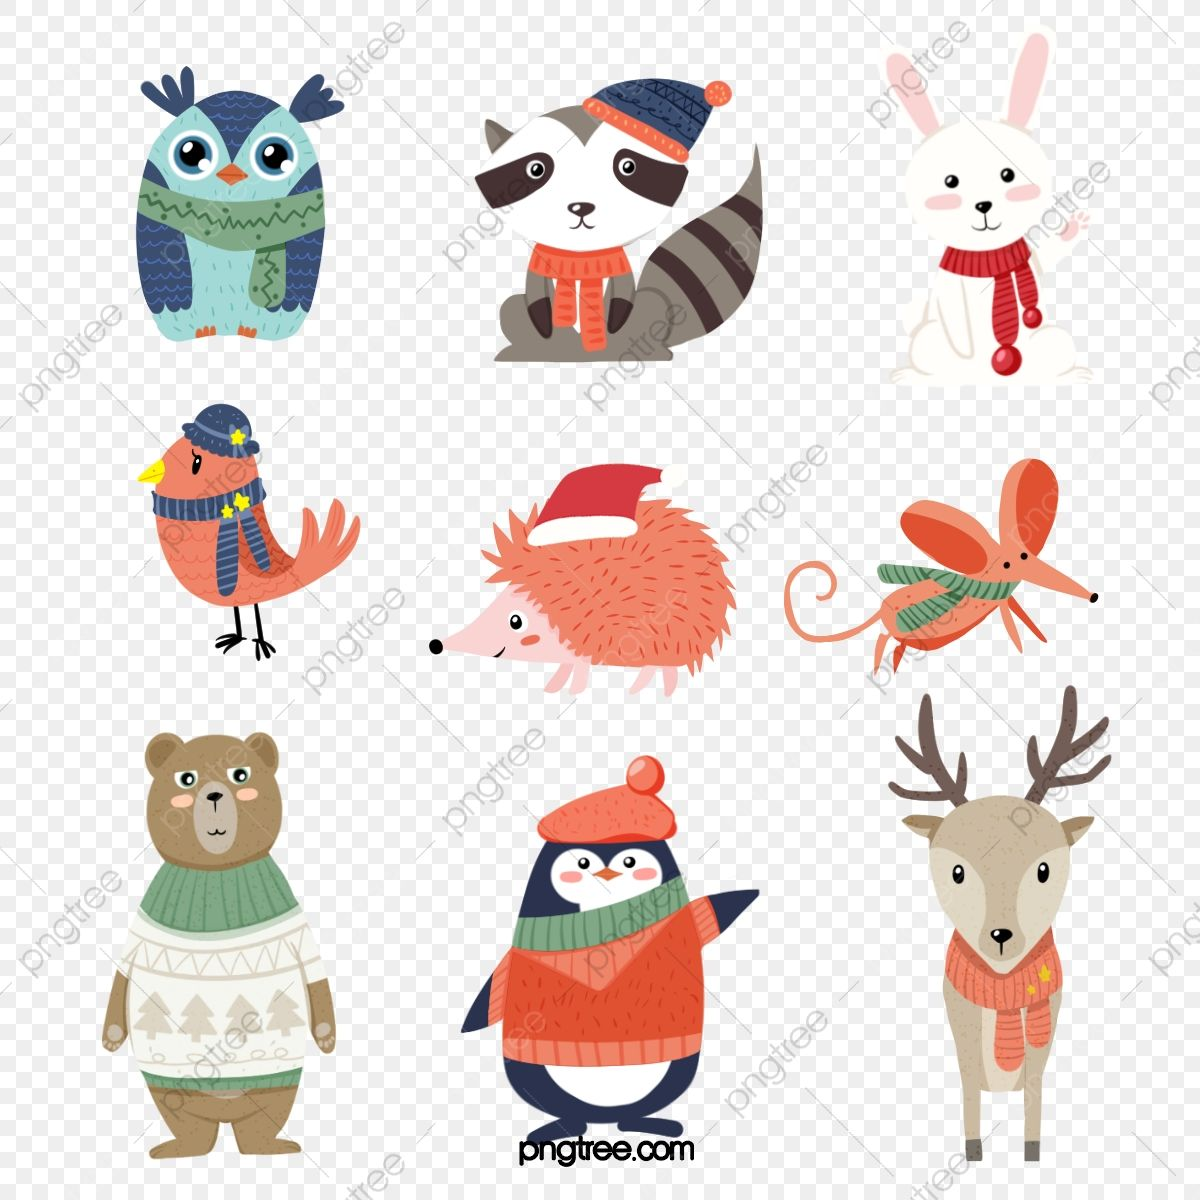 Cute Little Animals In Winter Animal Clipart Animal Cartoon Style Png Transparent Clipart Image And Psd File For Free Download Winter Animals Cute Little Animals Cartoon Styles